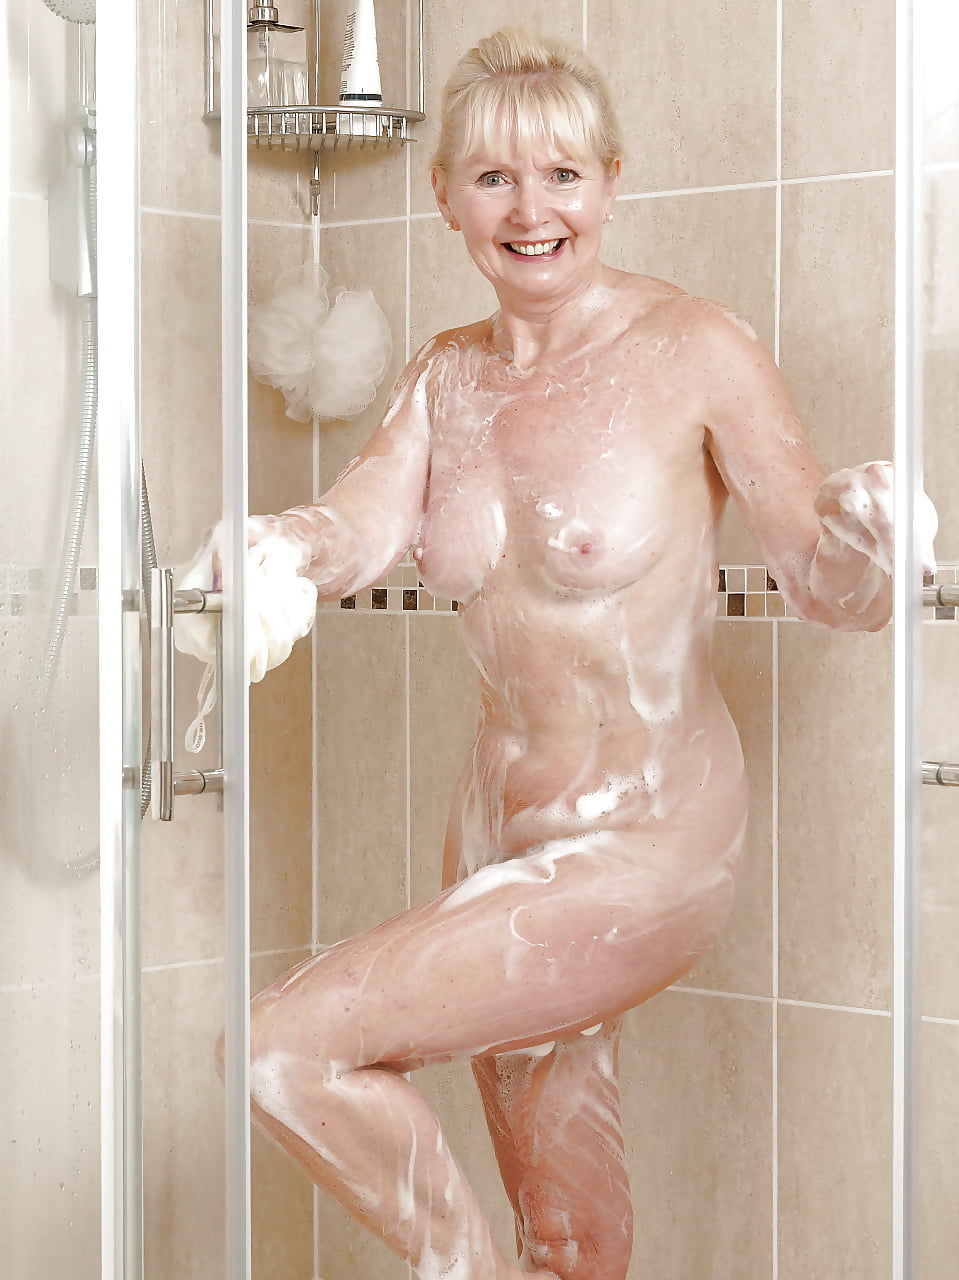 gilf-nude-shower-sloppy-ass-anal-movs